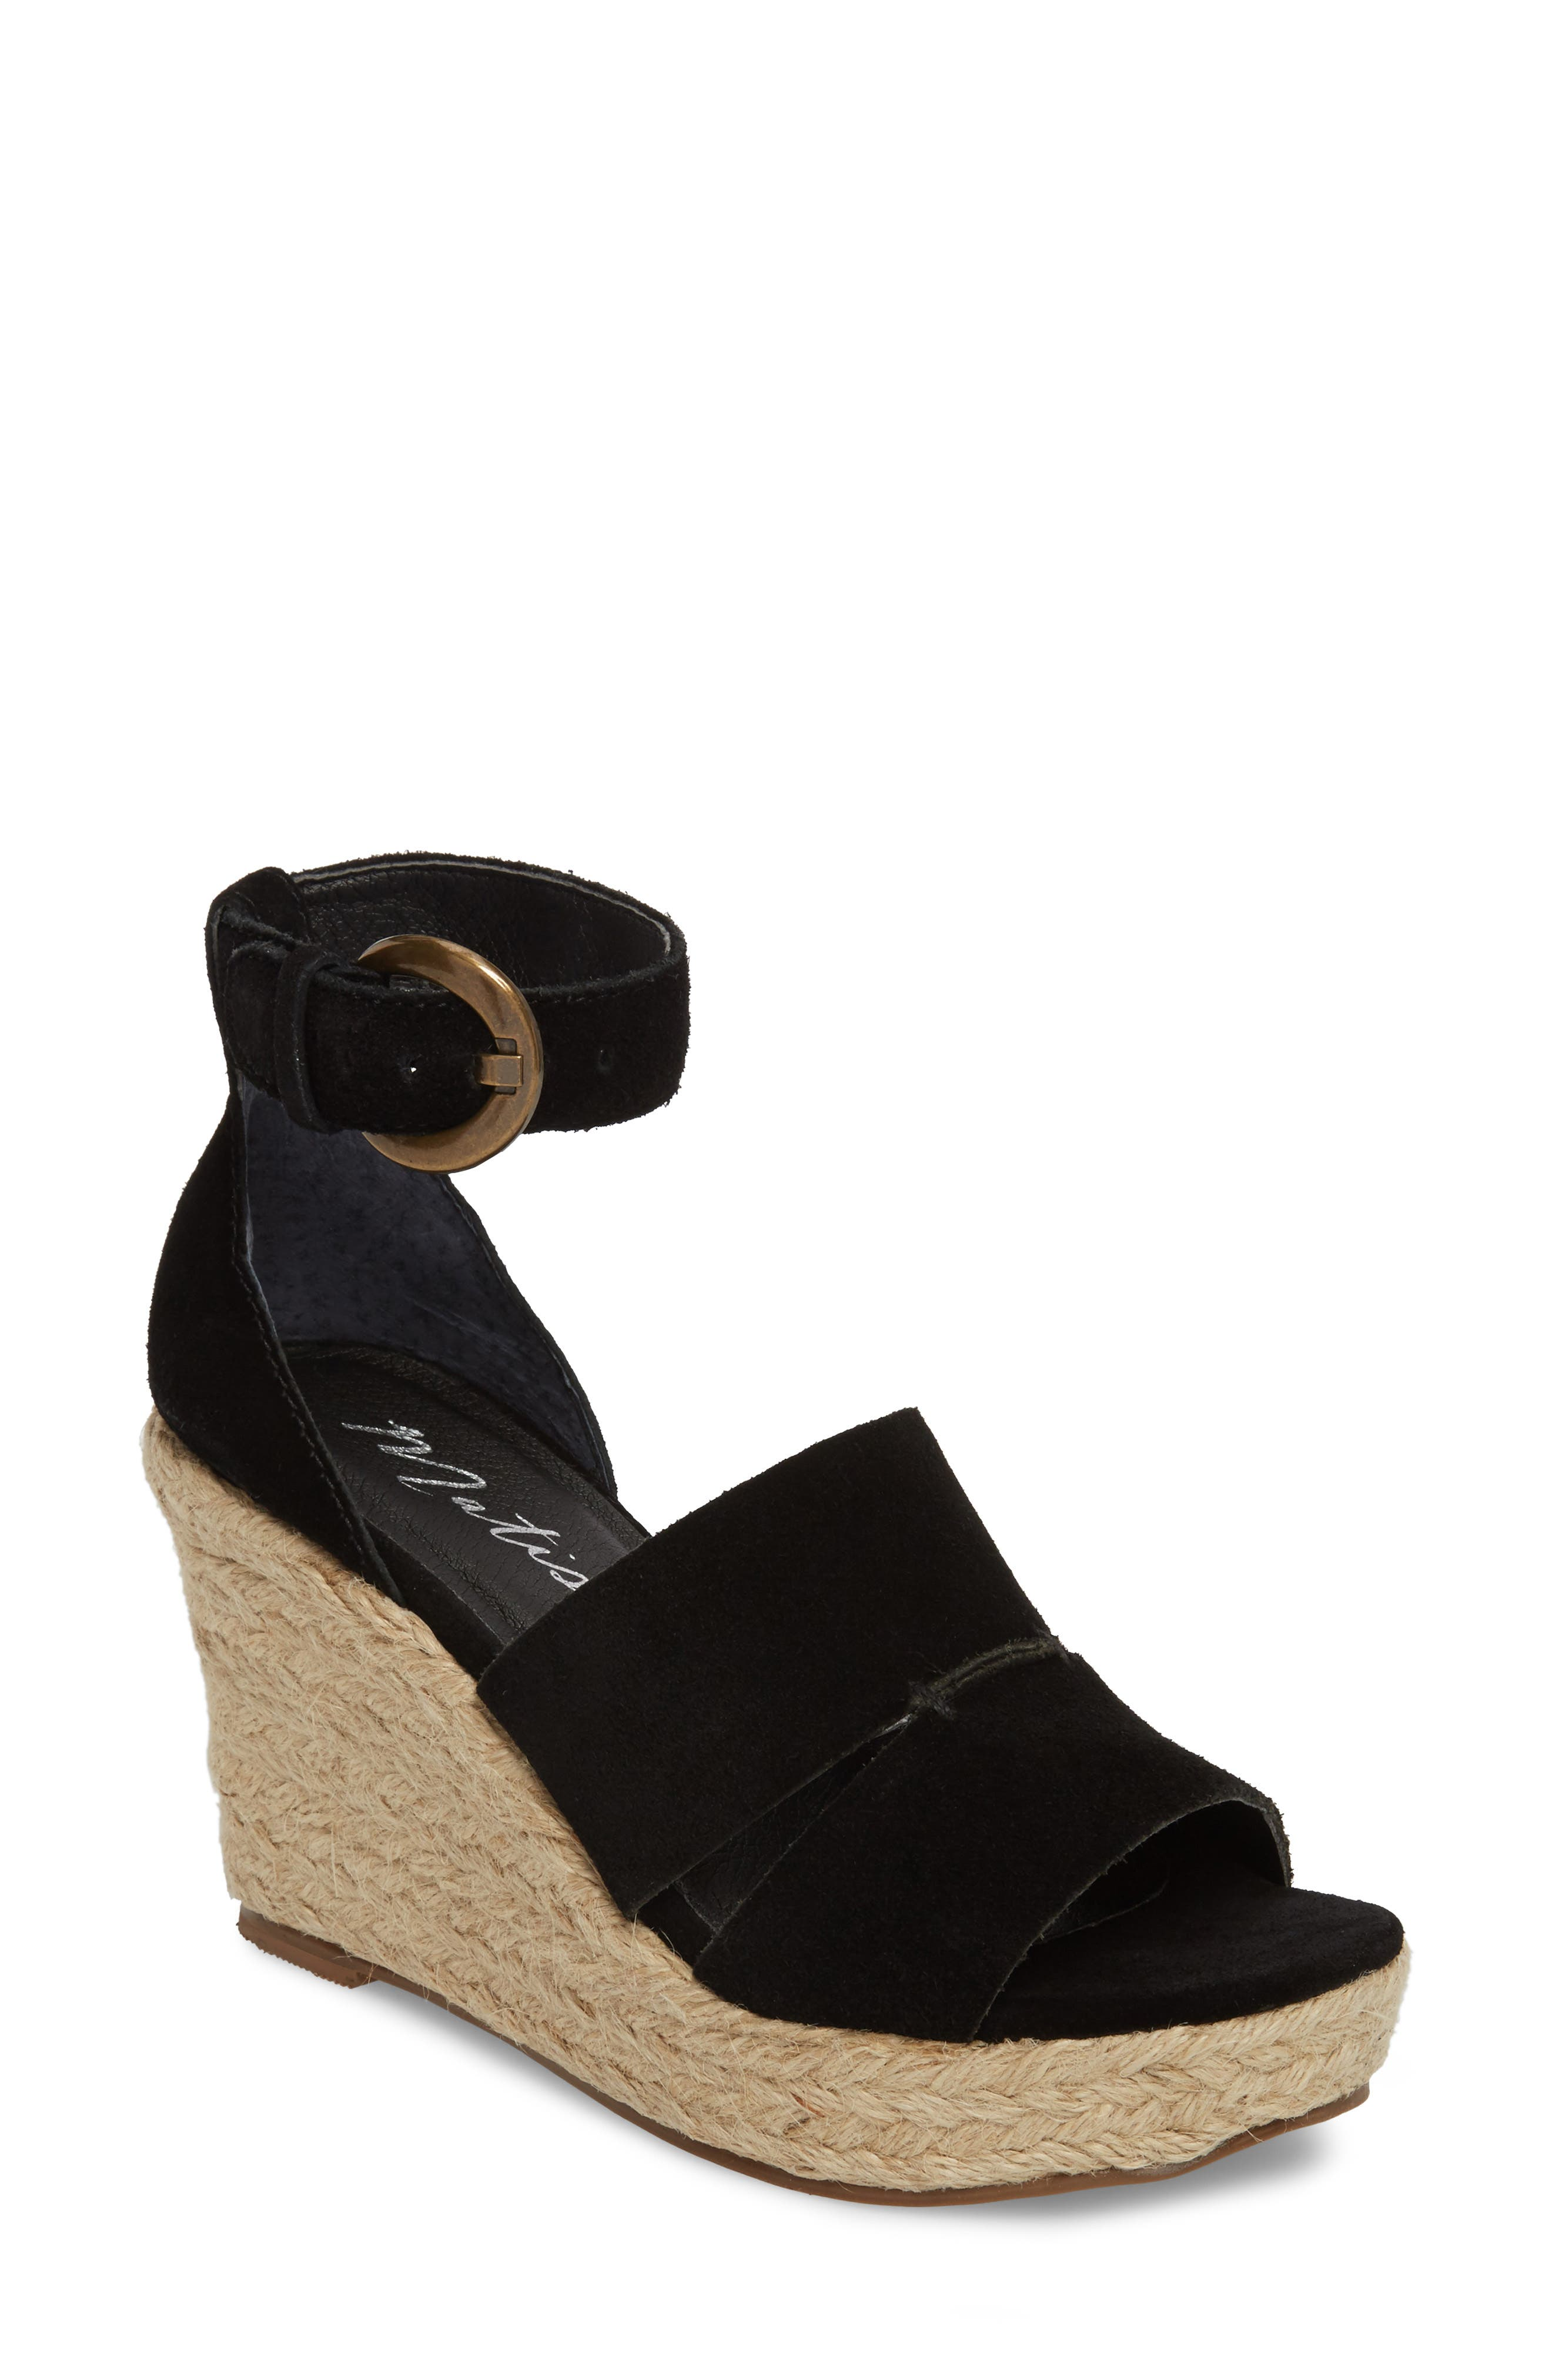 Cha Cha Espadrille Wedge Sandal,                         Main,                         color, BLACK SUEDE